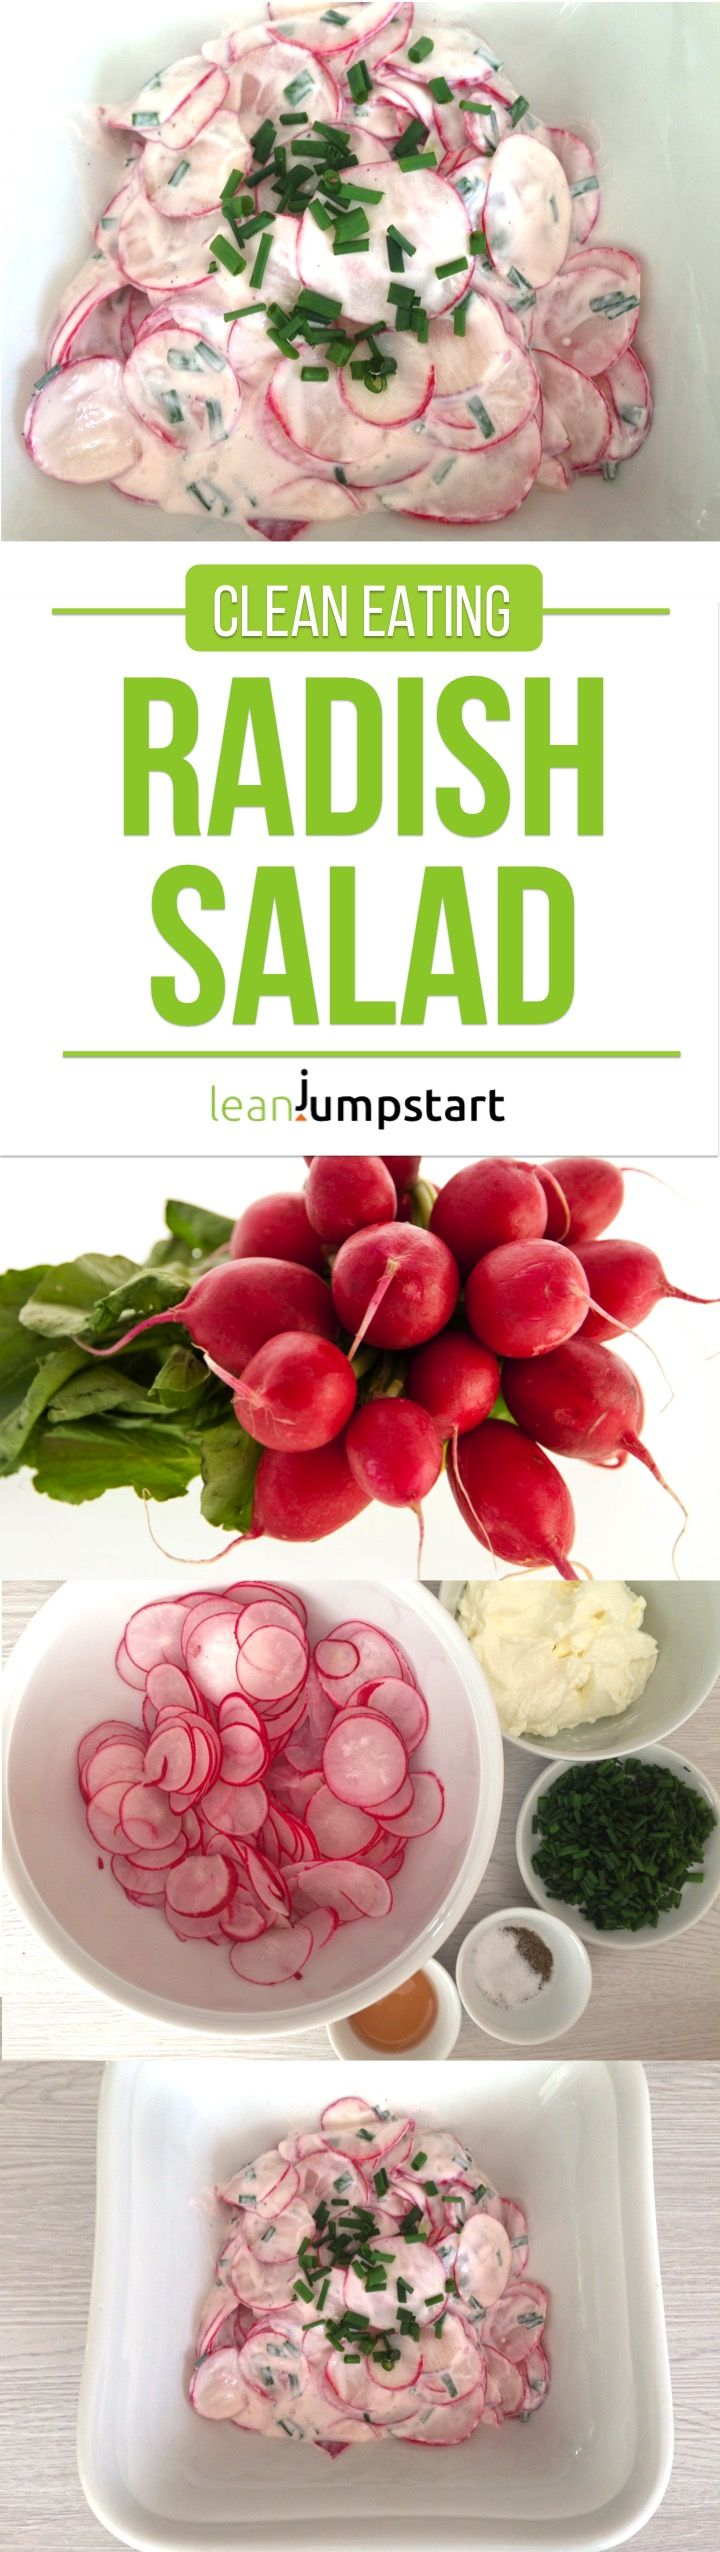 Here comes my absolute favorite radish salad recipe with sour cream and chives - a match in heaven to balance out the pungent taste of radishes. Click here!